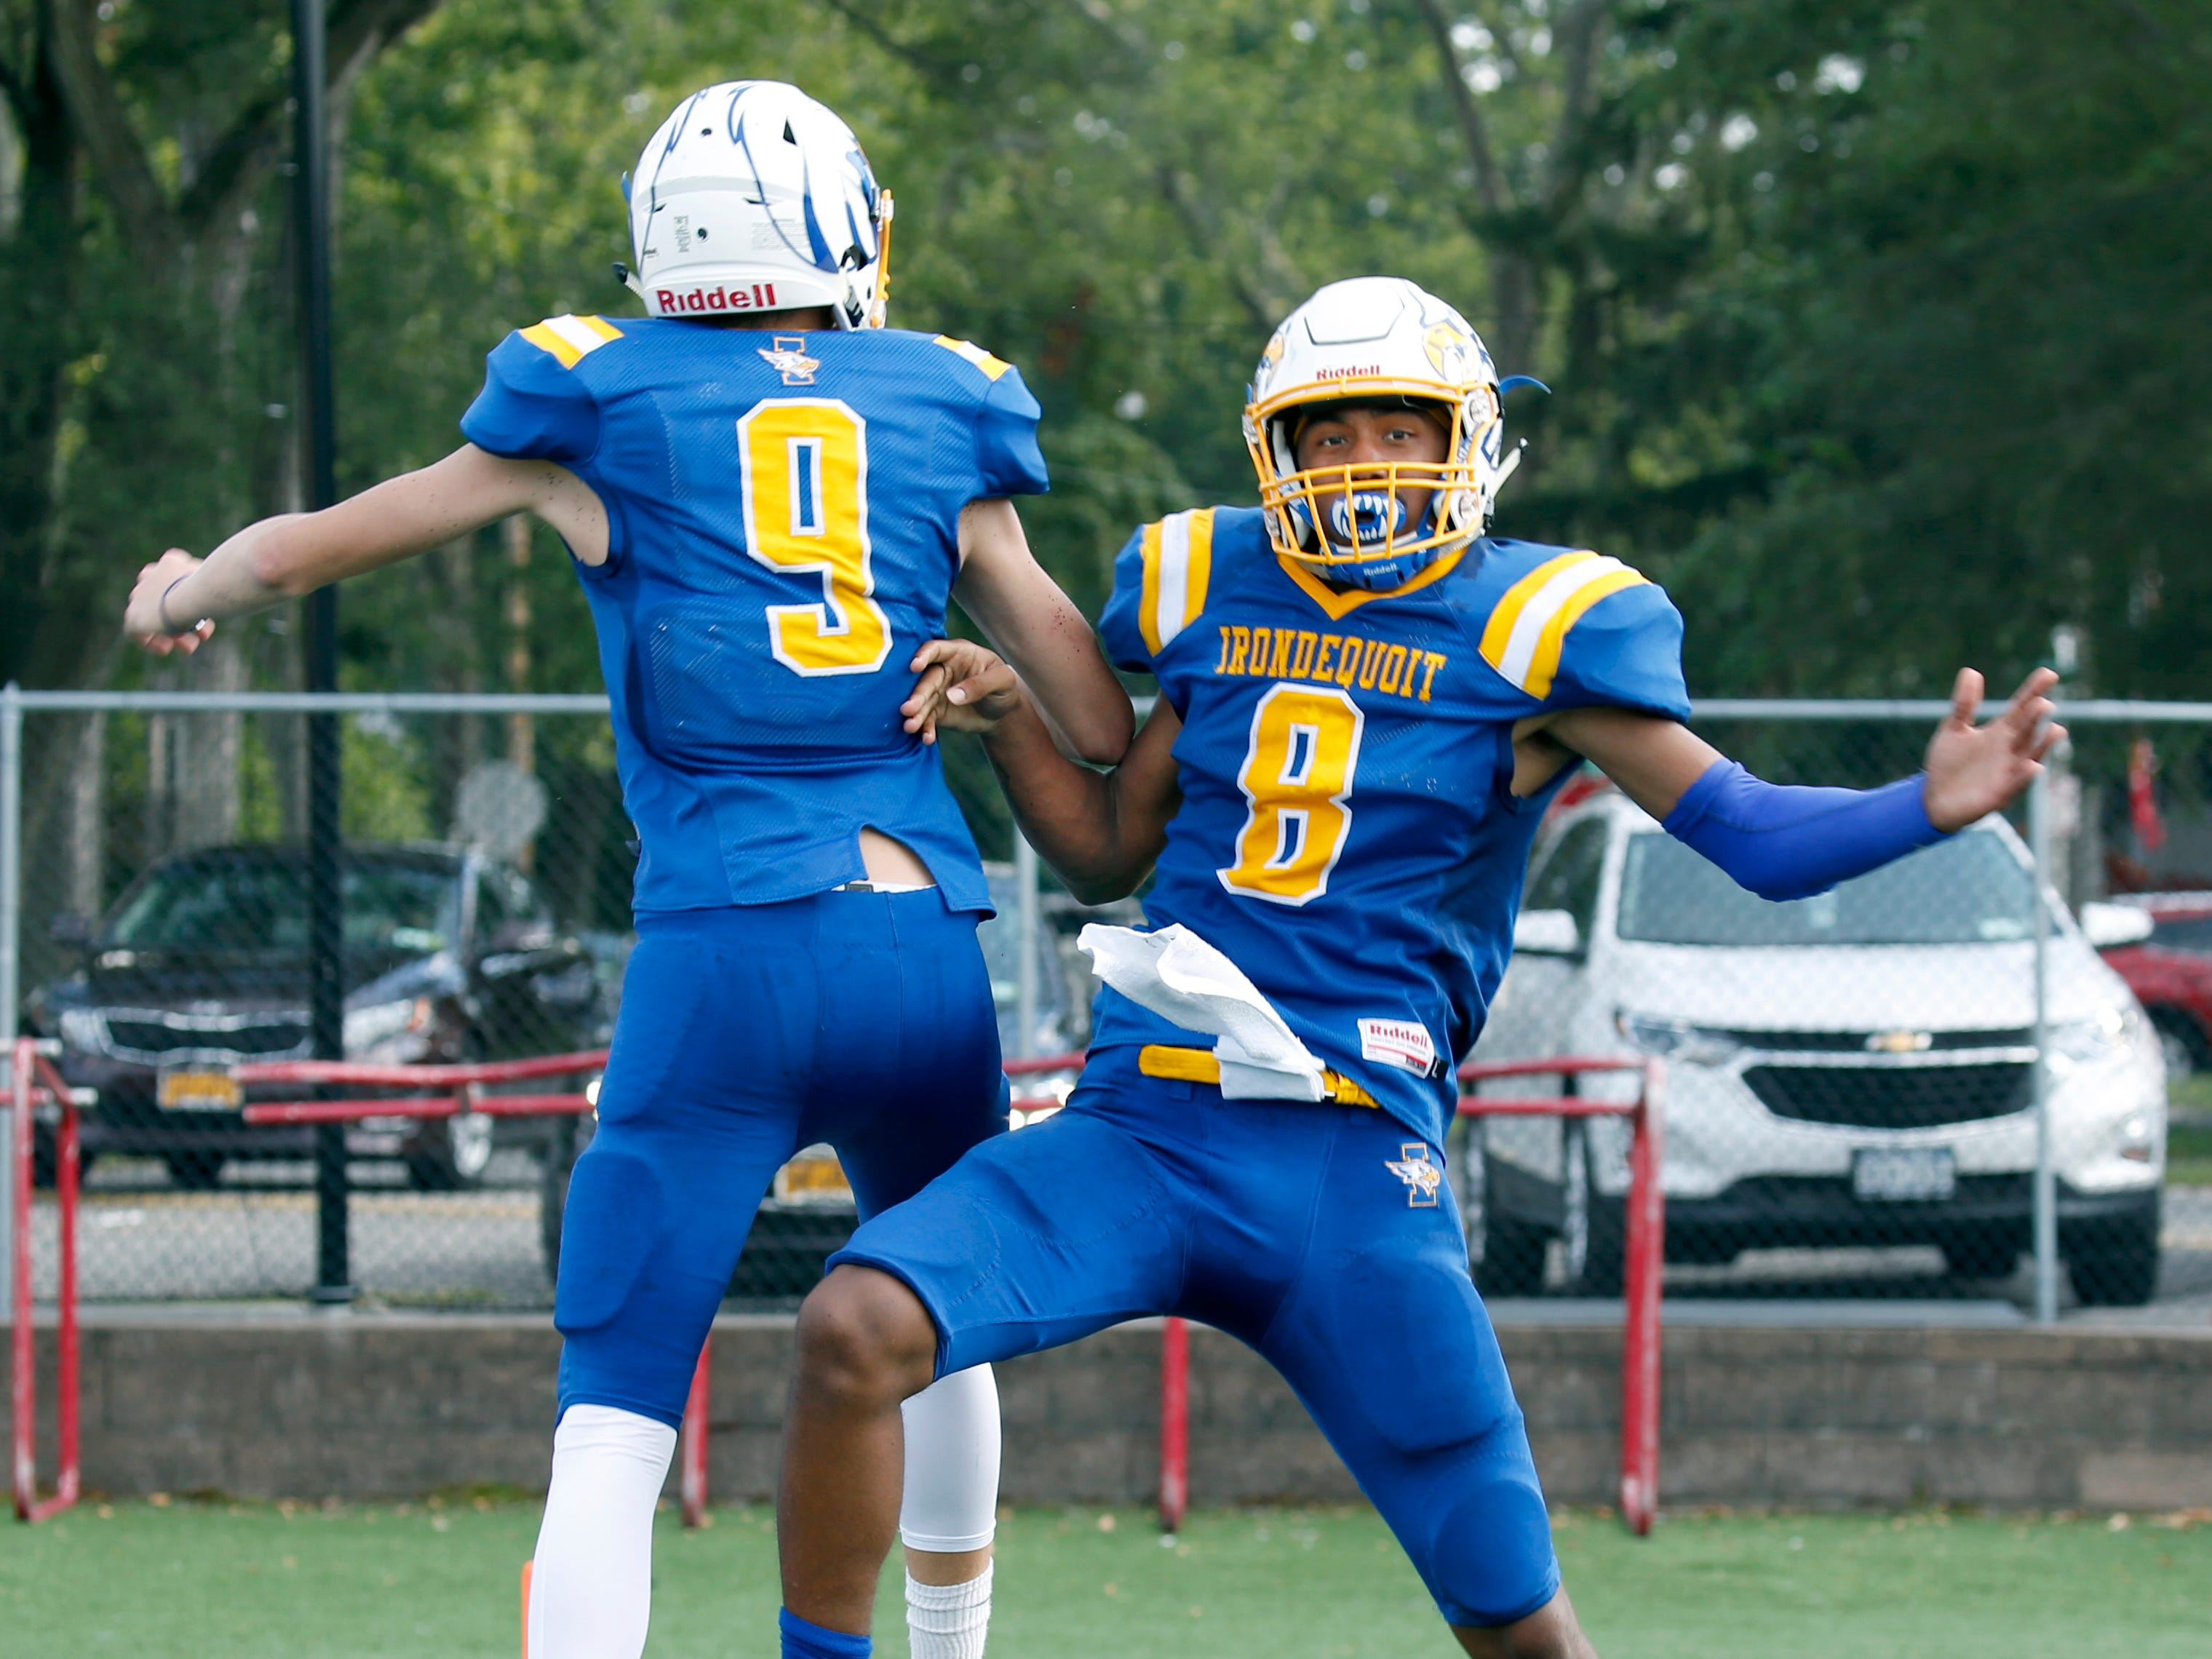 Irondequoit's Freddy June Jr. celebrates his touchdown with Quinn Simonson against Eastridge in the fourth quarter, to set what would be the final score of 21-10 after the kick at Irondequoit High School.